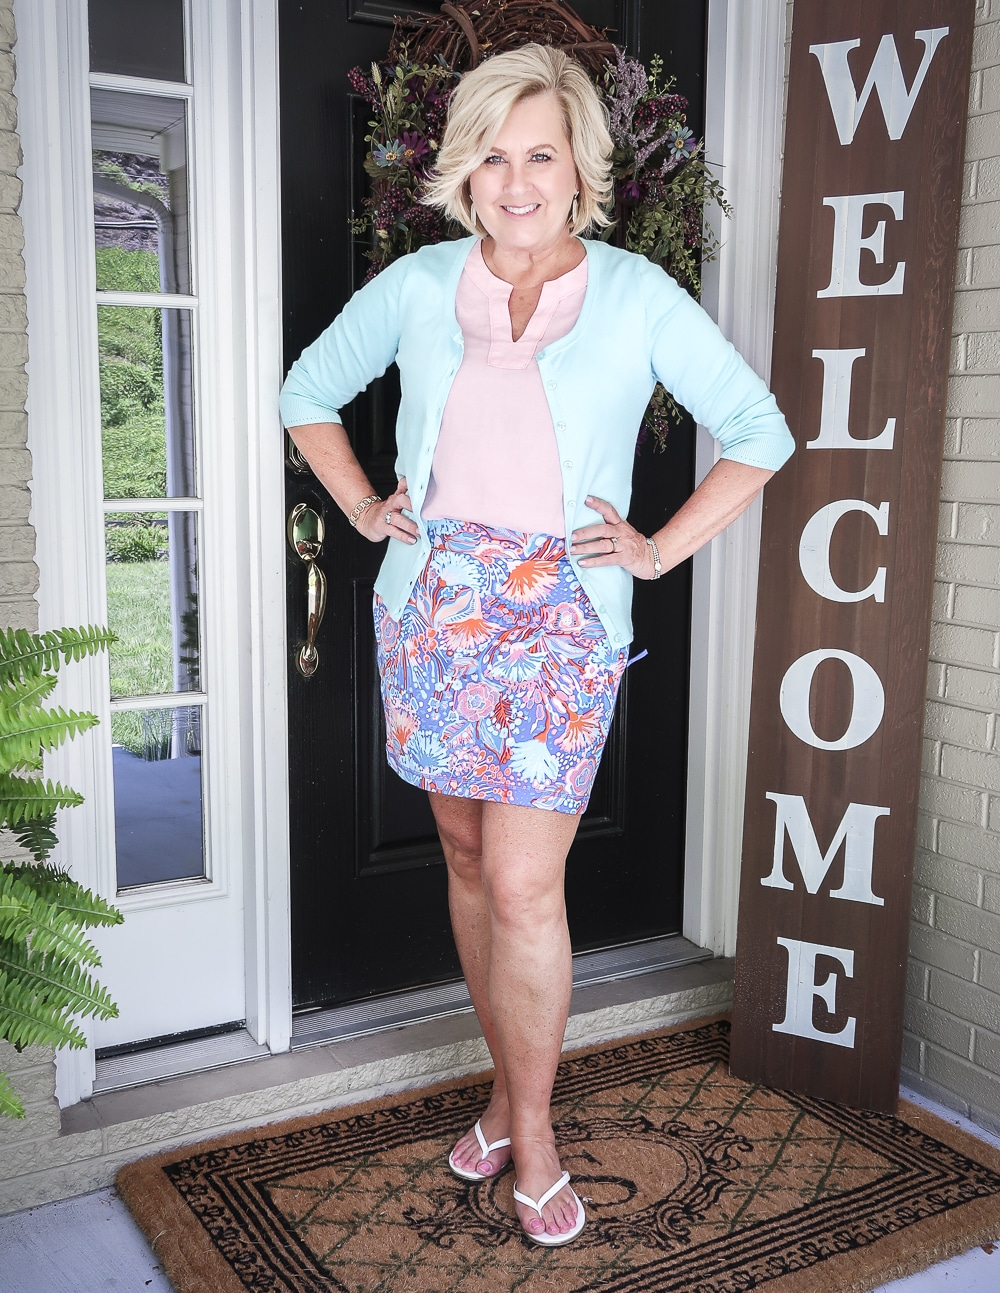 Fashion Blogger 50 Is Not Old is wearing a pale linen v neck top, an aqua colored cardigan, and a colorful yoga skort